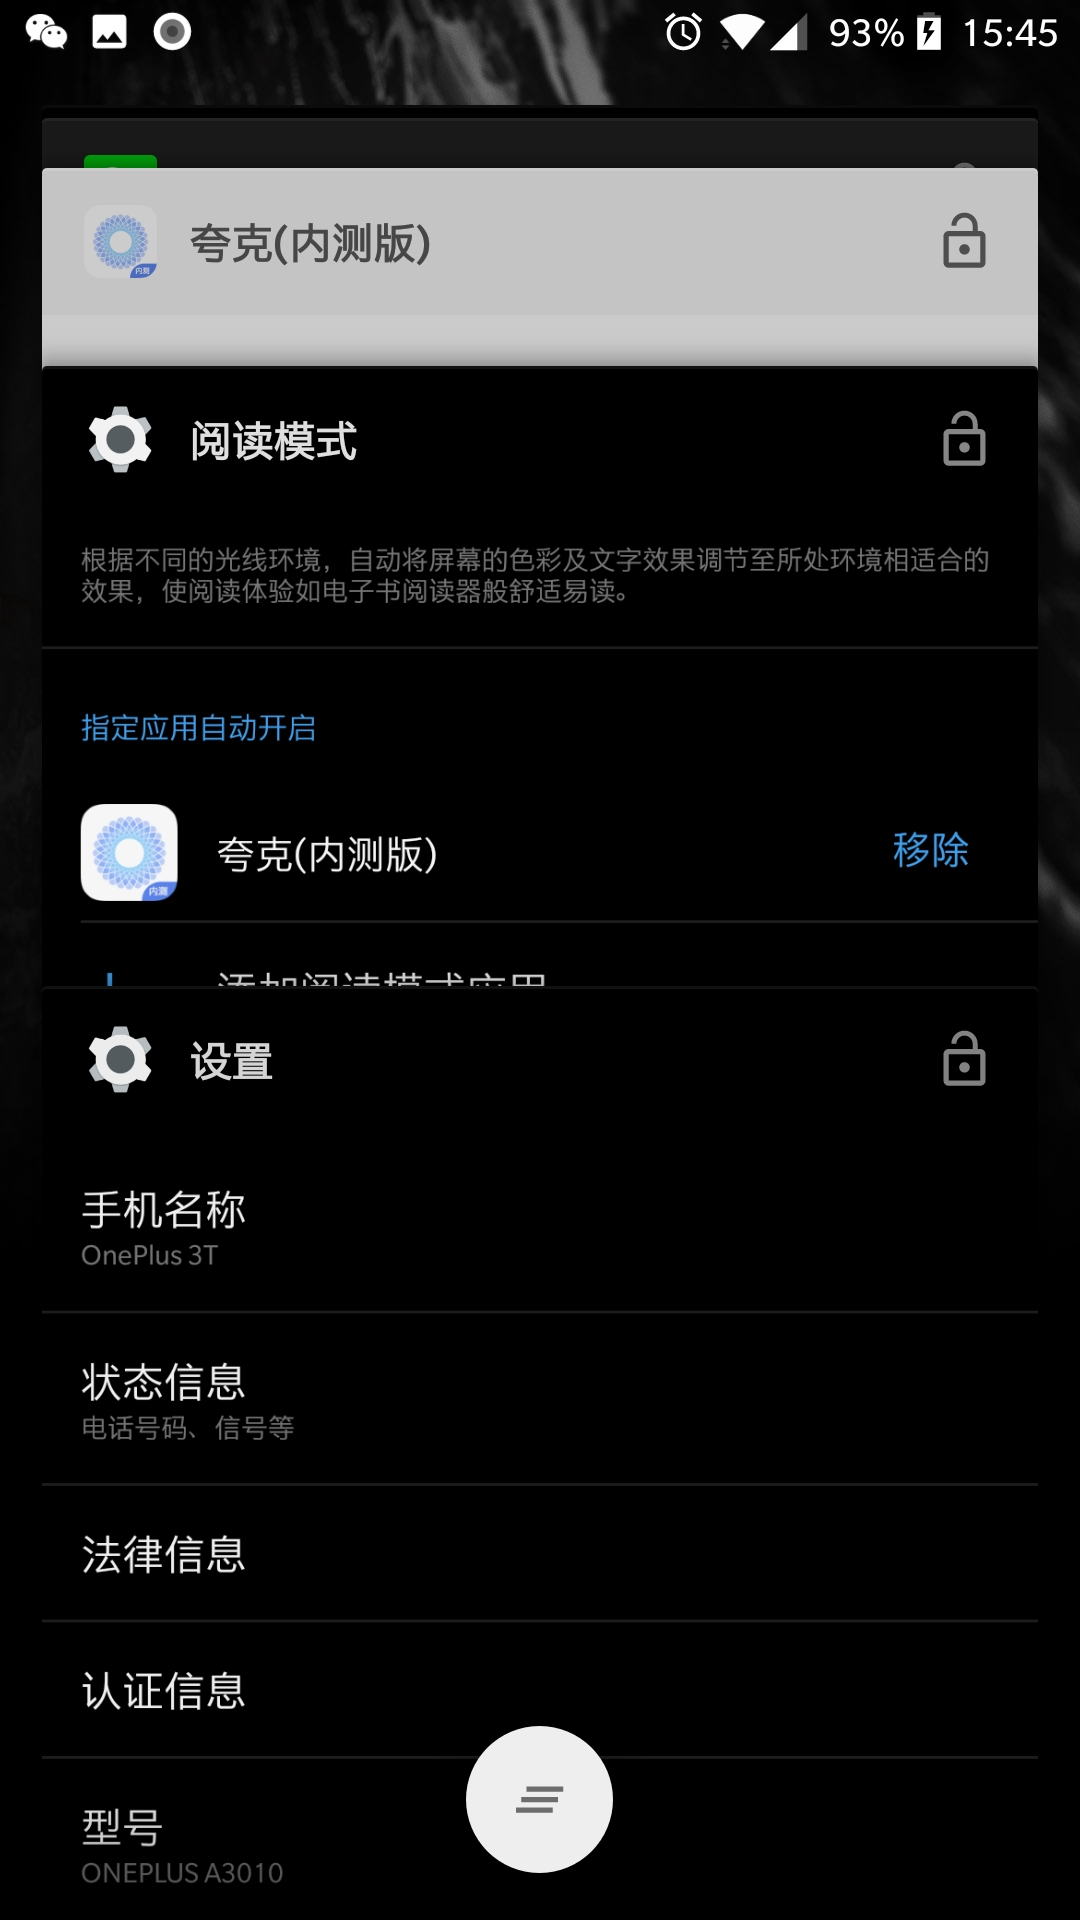 Screenshot_20180503-154501.jpg